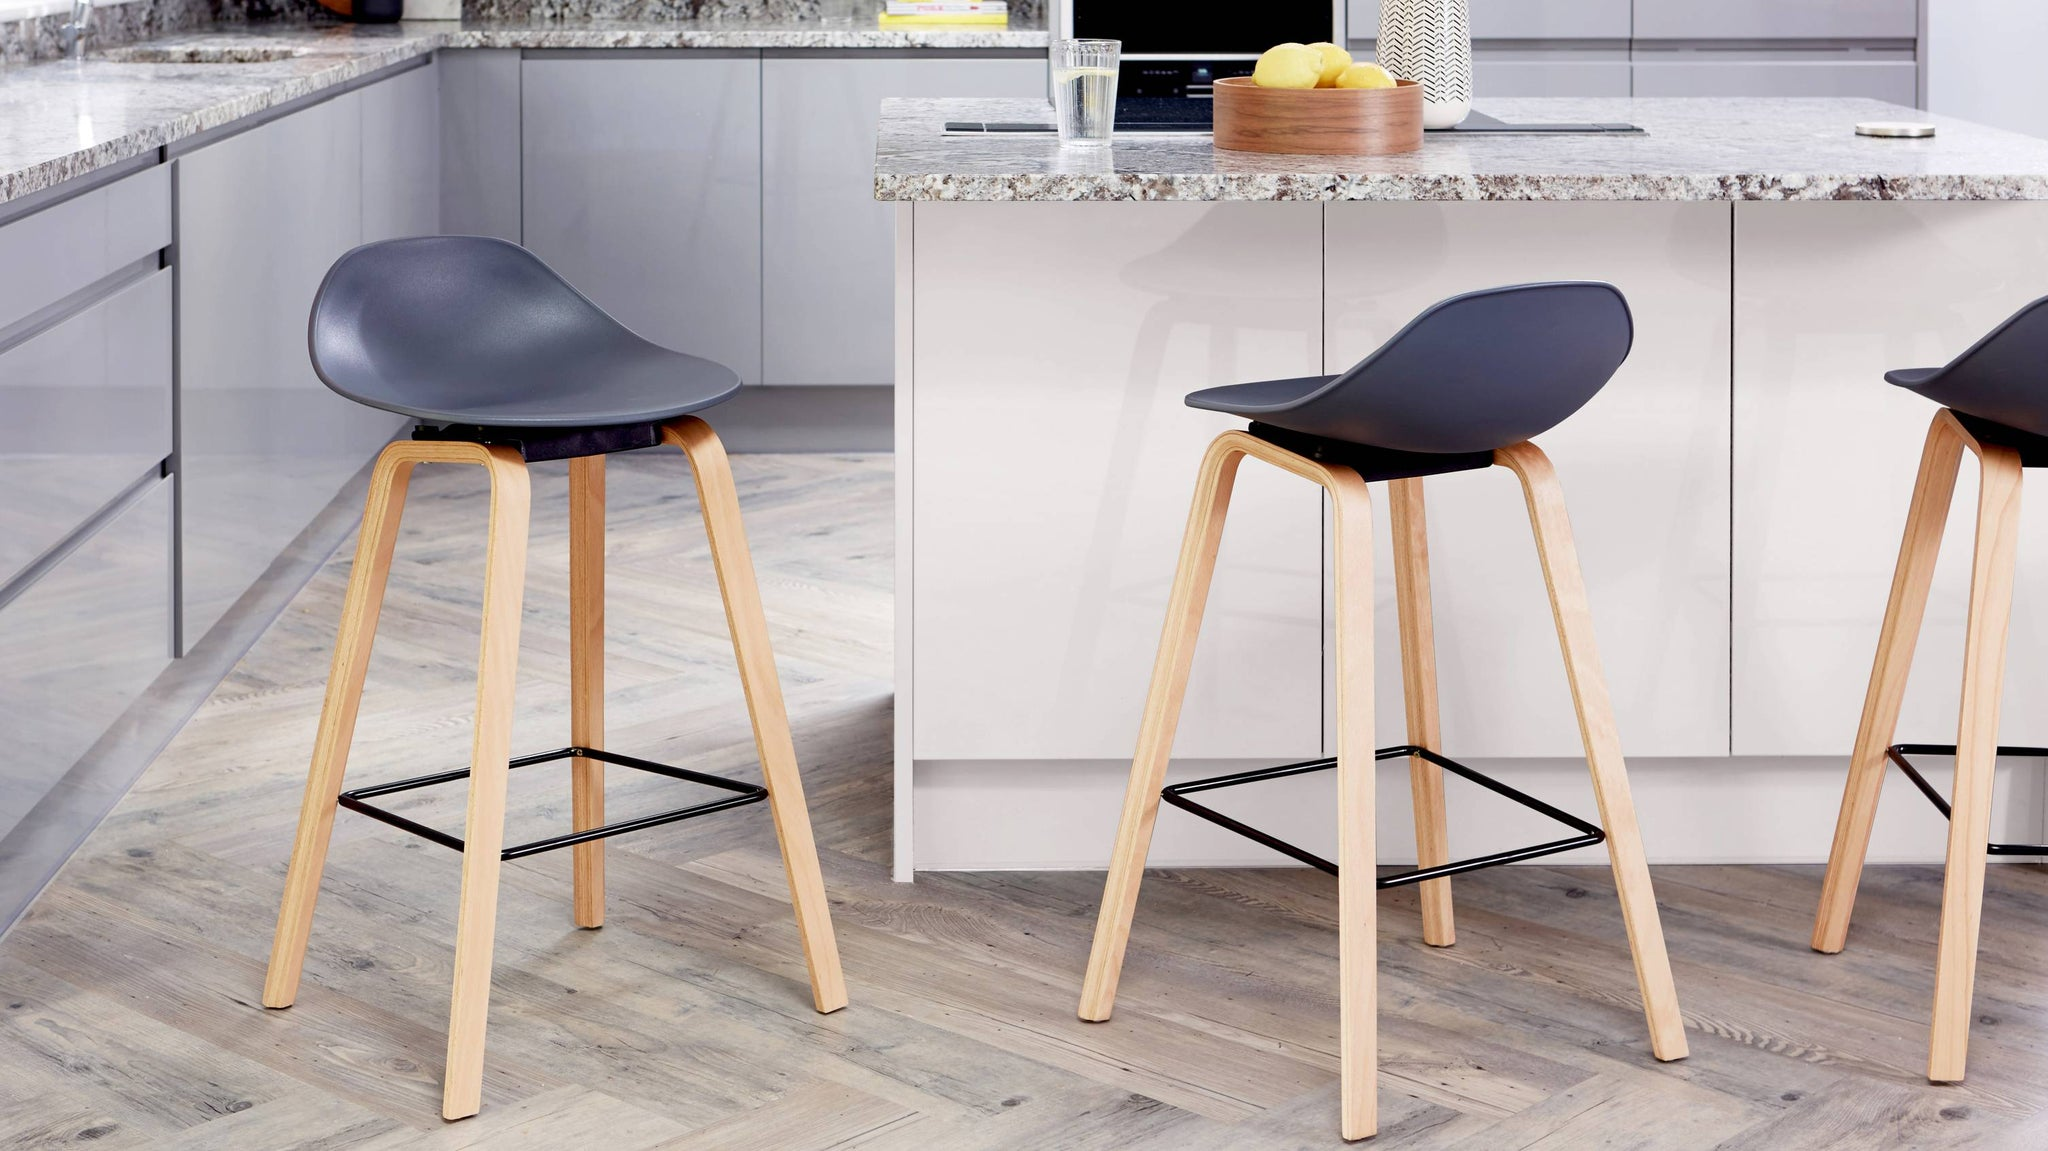 Buy wooden bar stools